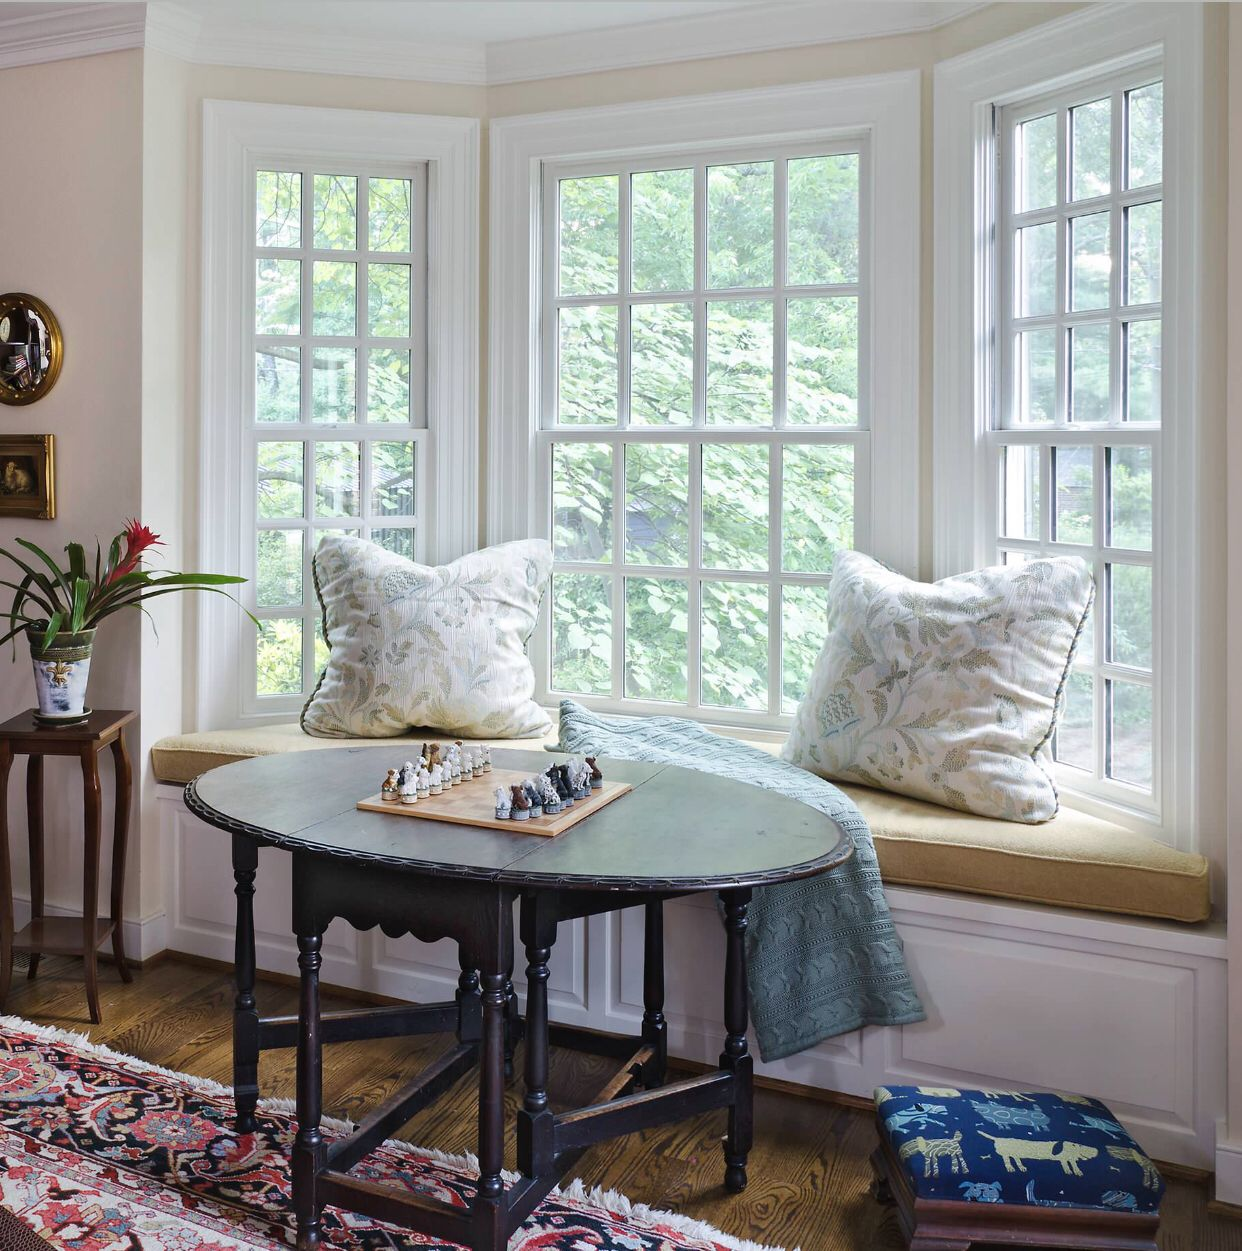 Bay windows are the perfect way to add natural light and